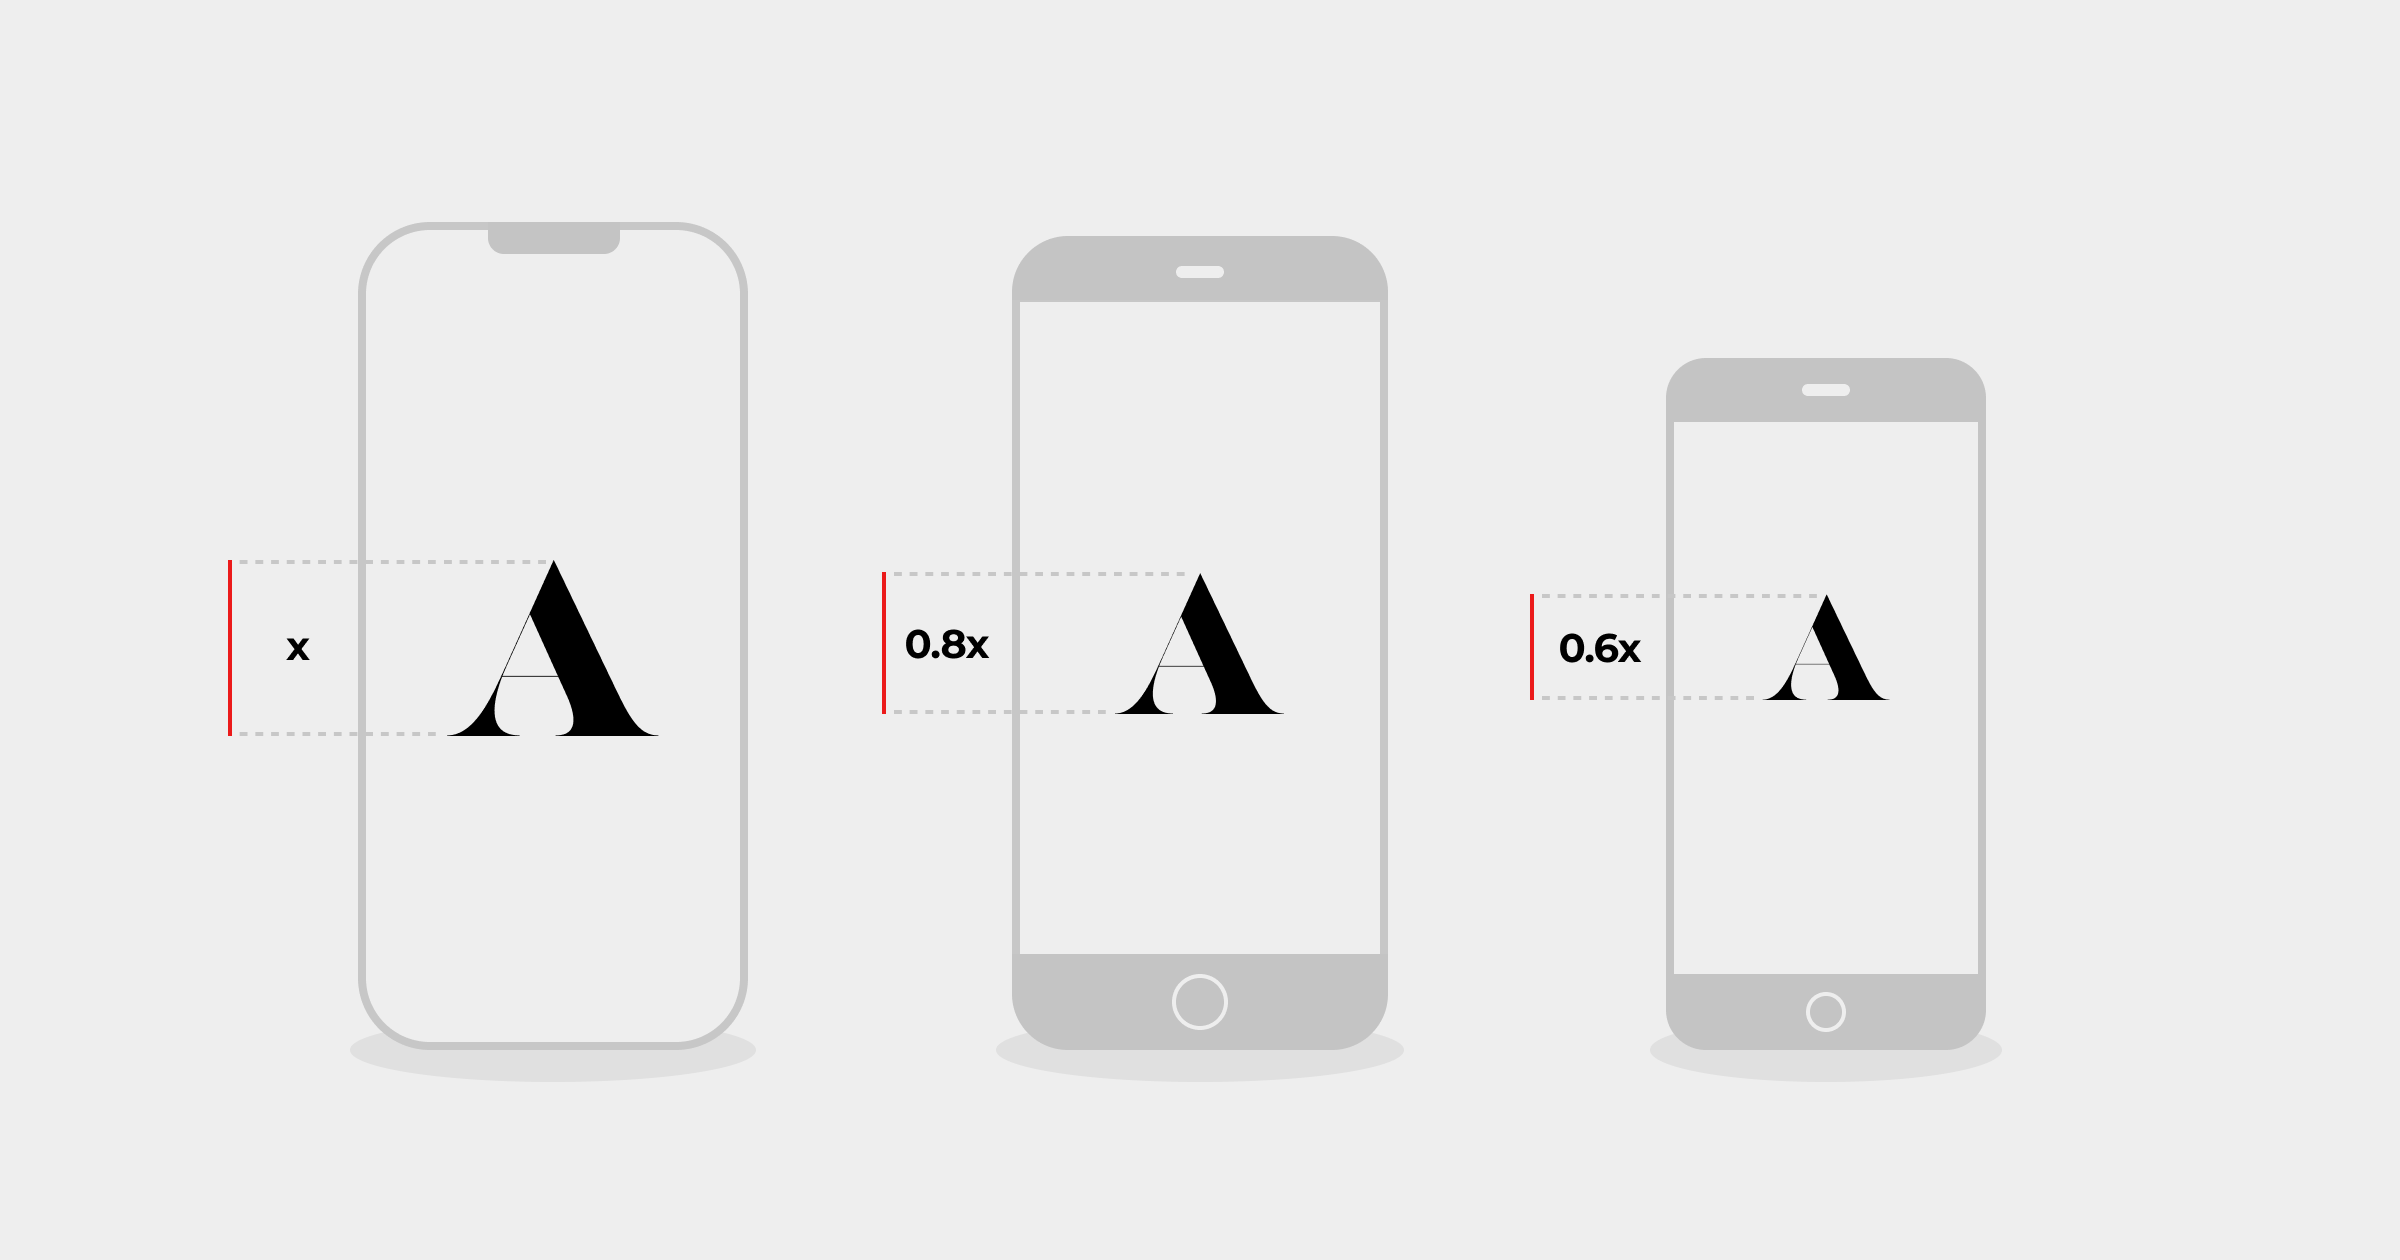 iOS Typography design system for Swift: Dynamic Font Size Scaling